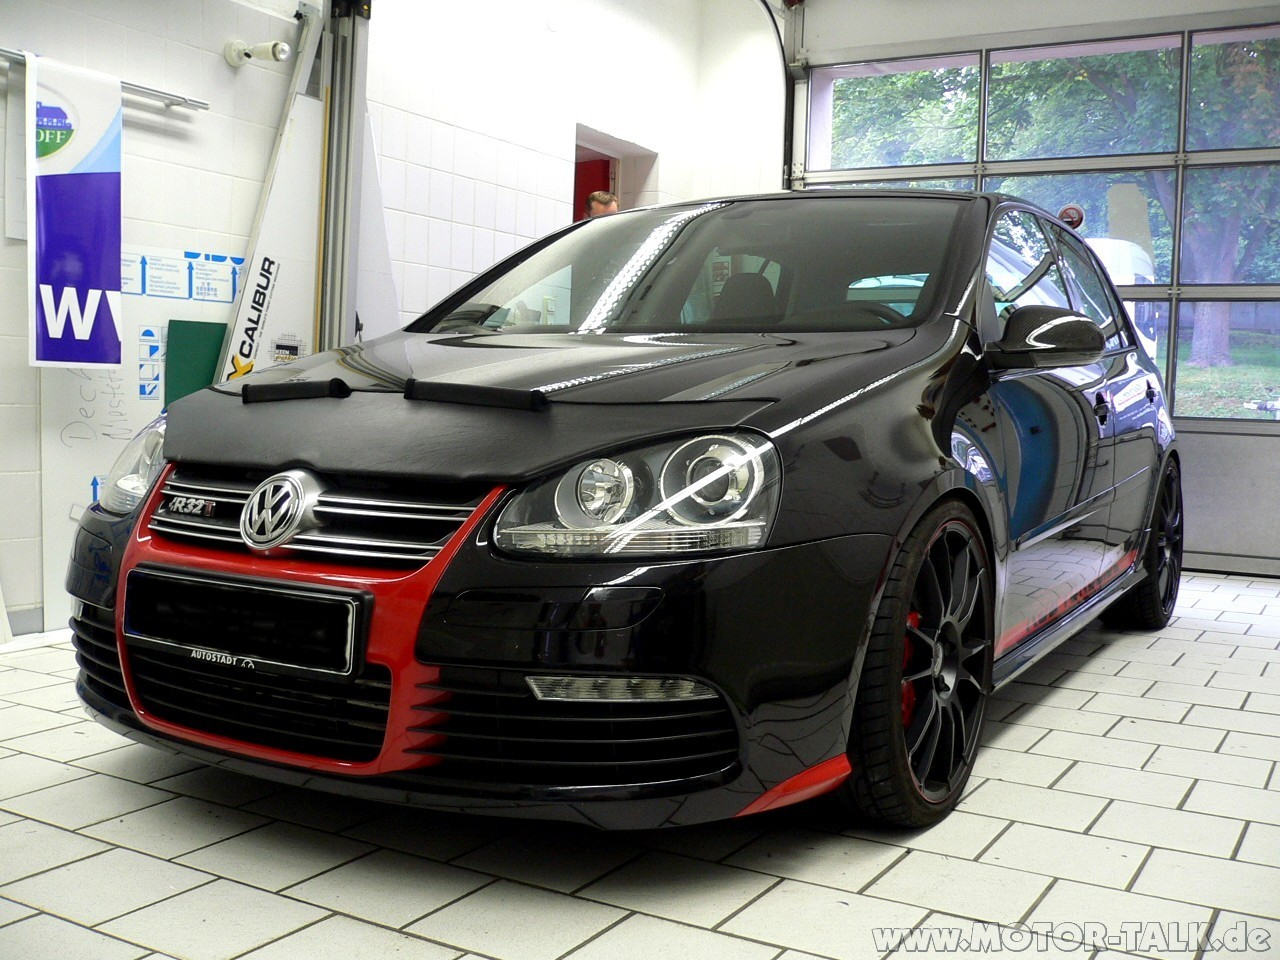 turbo golf 5 bild 142 mein golf 5 r32 turbo made bei r s tuning vw golf 5 203535897 golf 5 gti. Black Bedroom Furniture Sets. Home Design Ideas